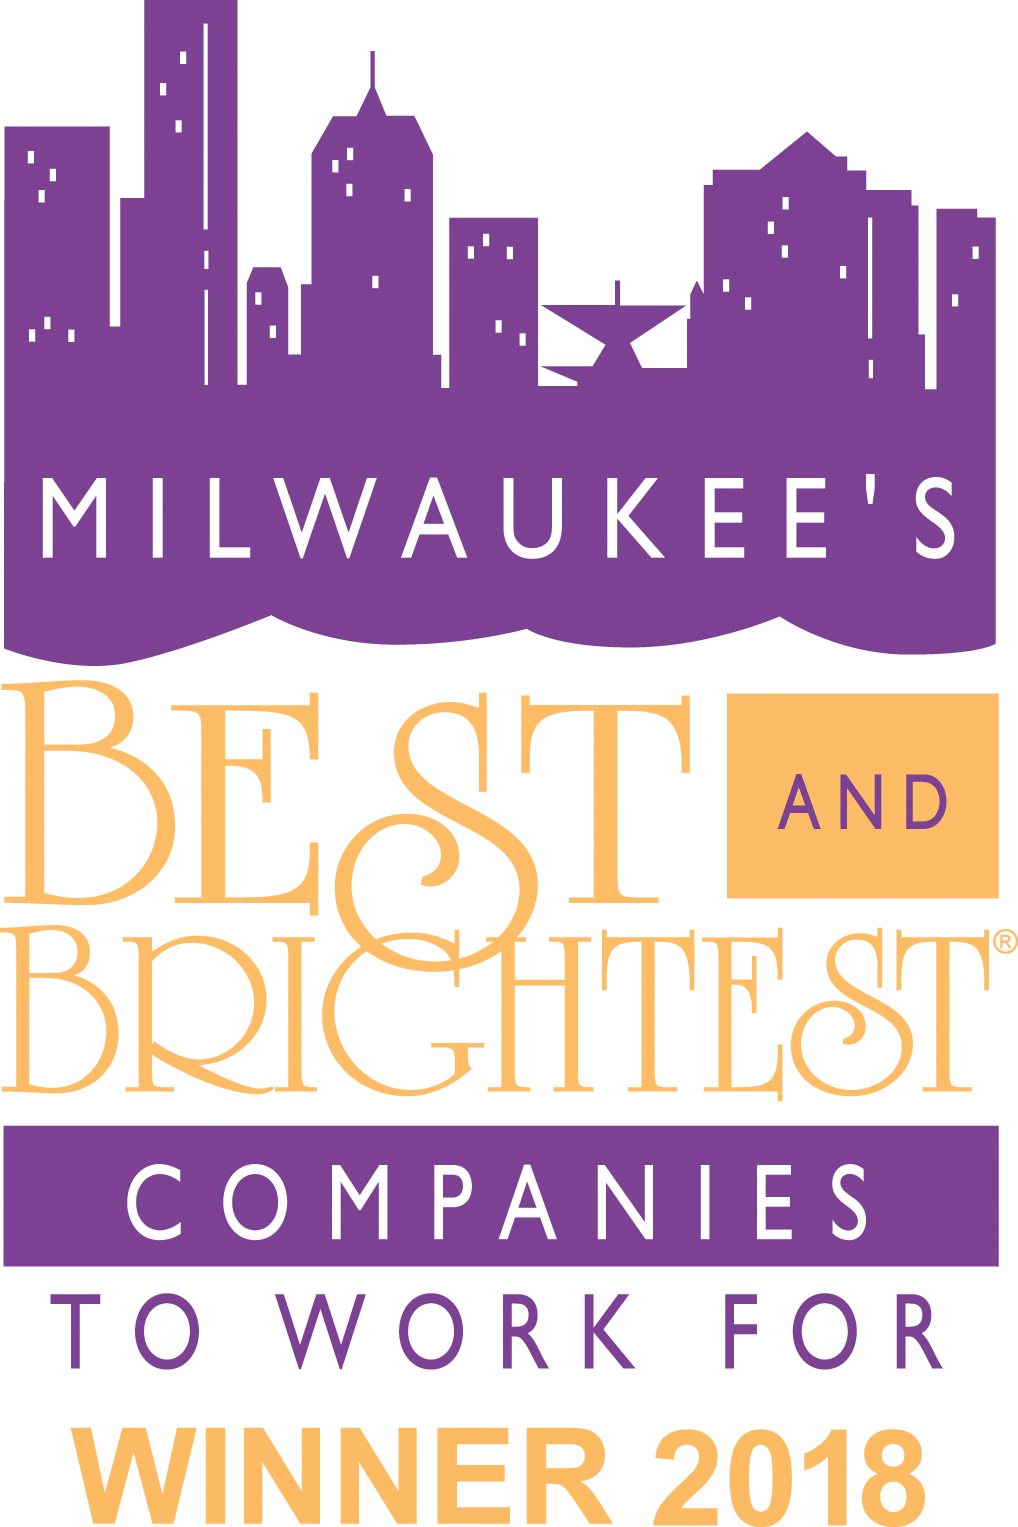 Milwaukee's Best and Brightest Companies Winner 2018